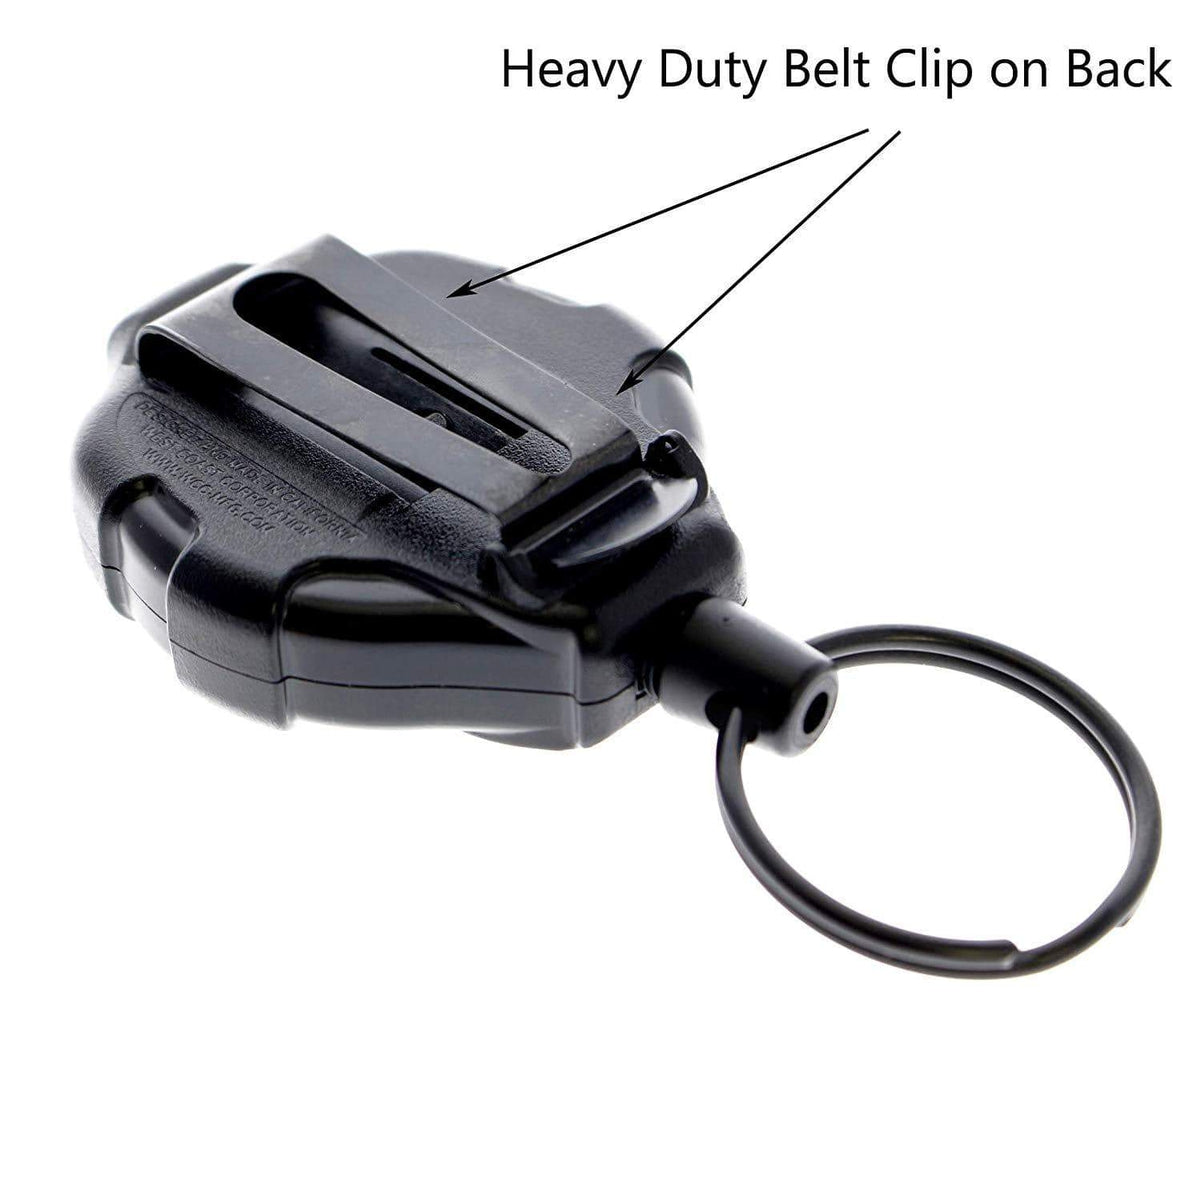 Heavy Duty Retractable Ratchit Keychain Tether Reel for Multiple Keys with Belt Clip and Locking Feature